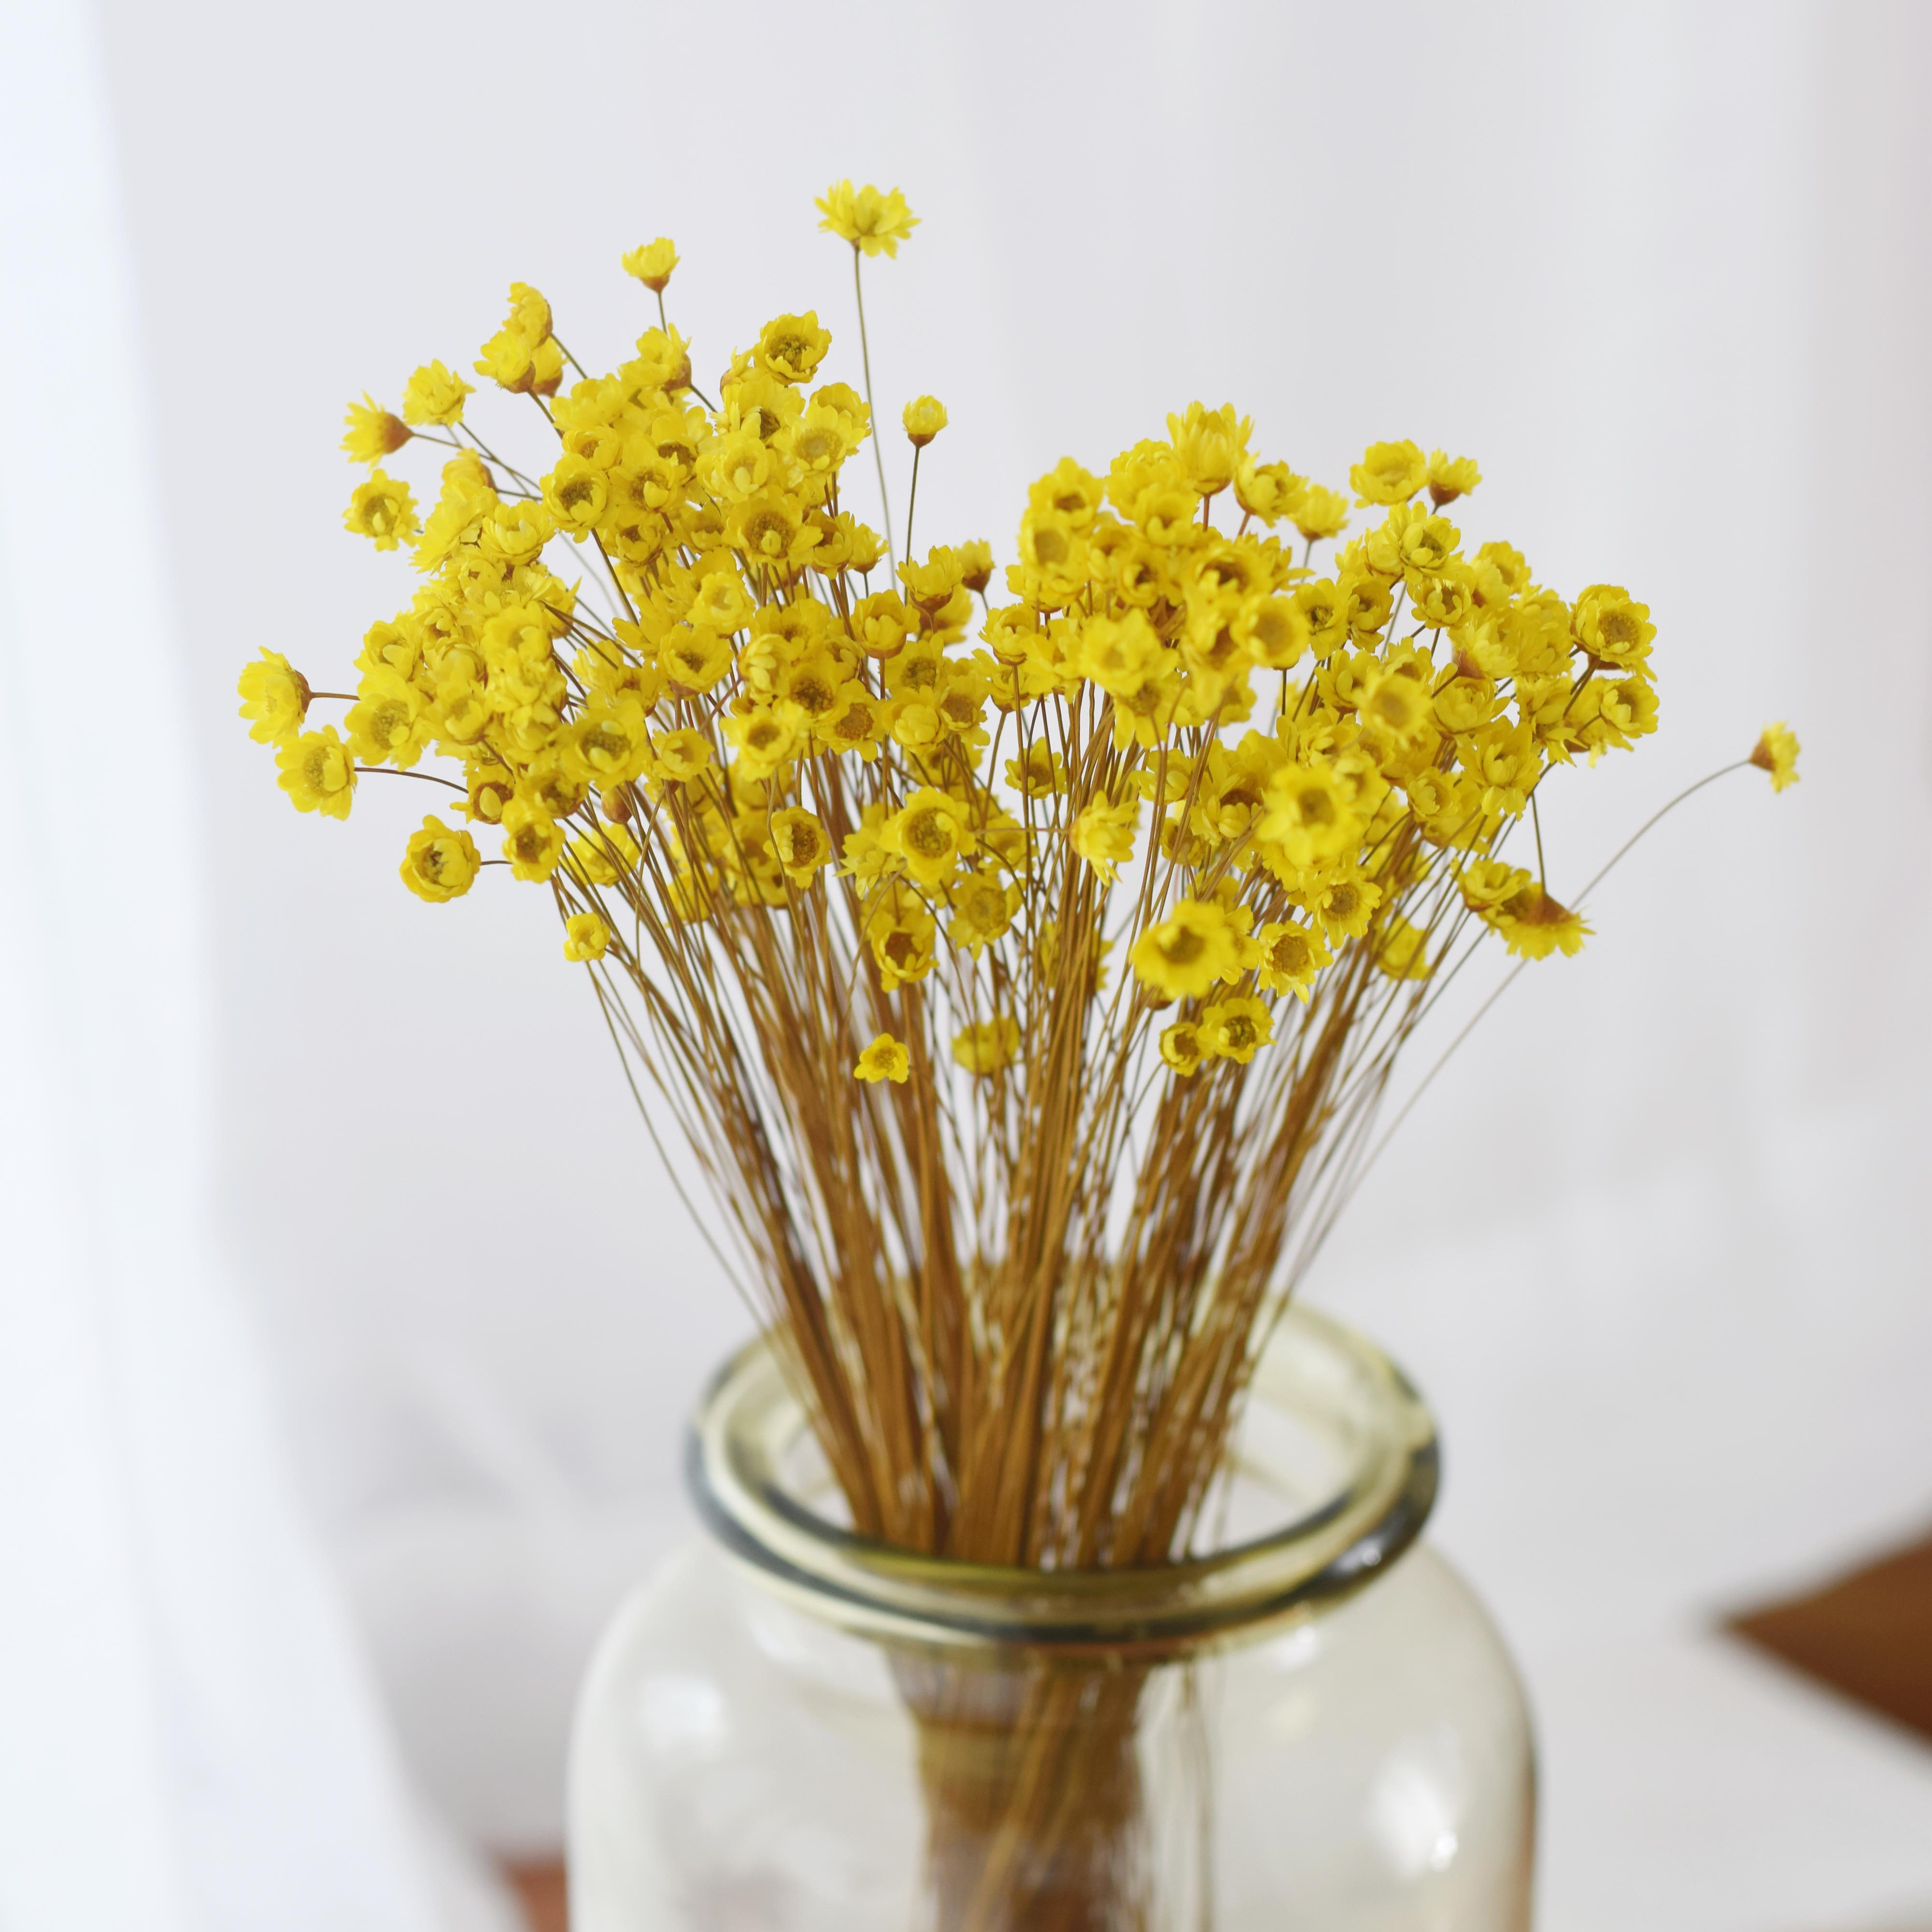 Brazilian small star flower mini daisy dried flower bouquet dried ...